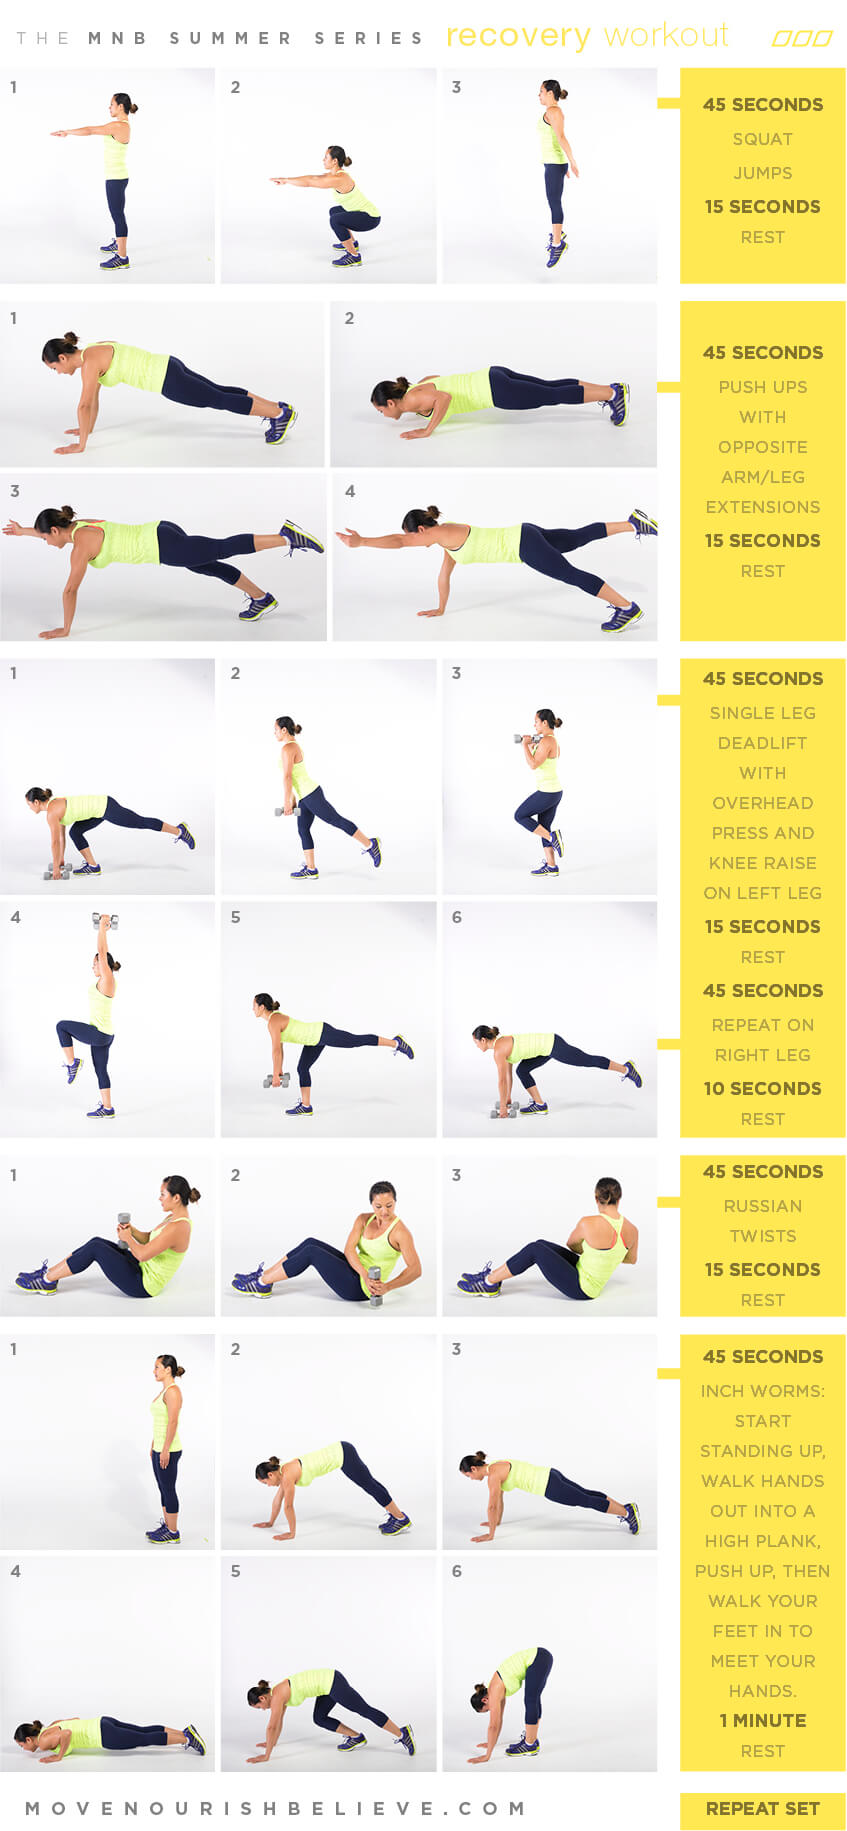 mnbsummerseries3_workout